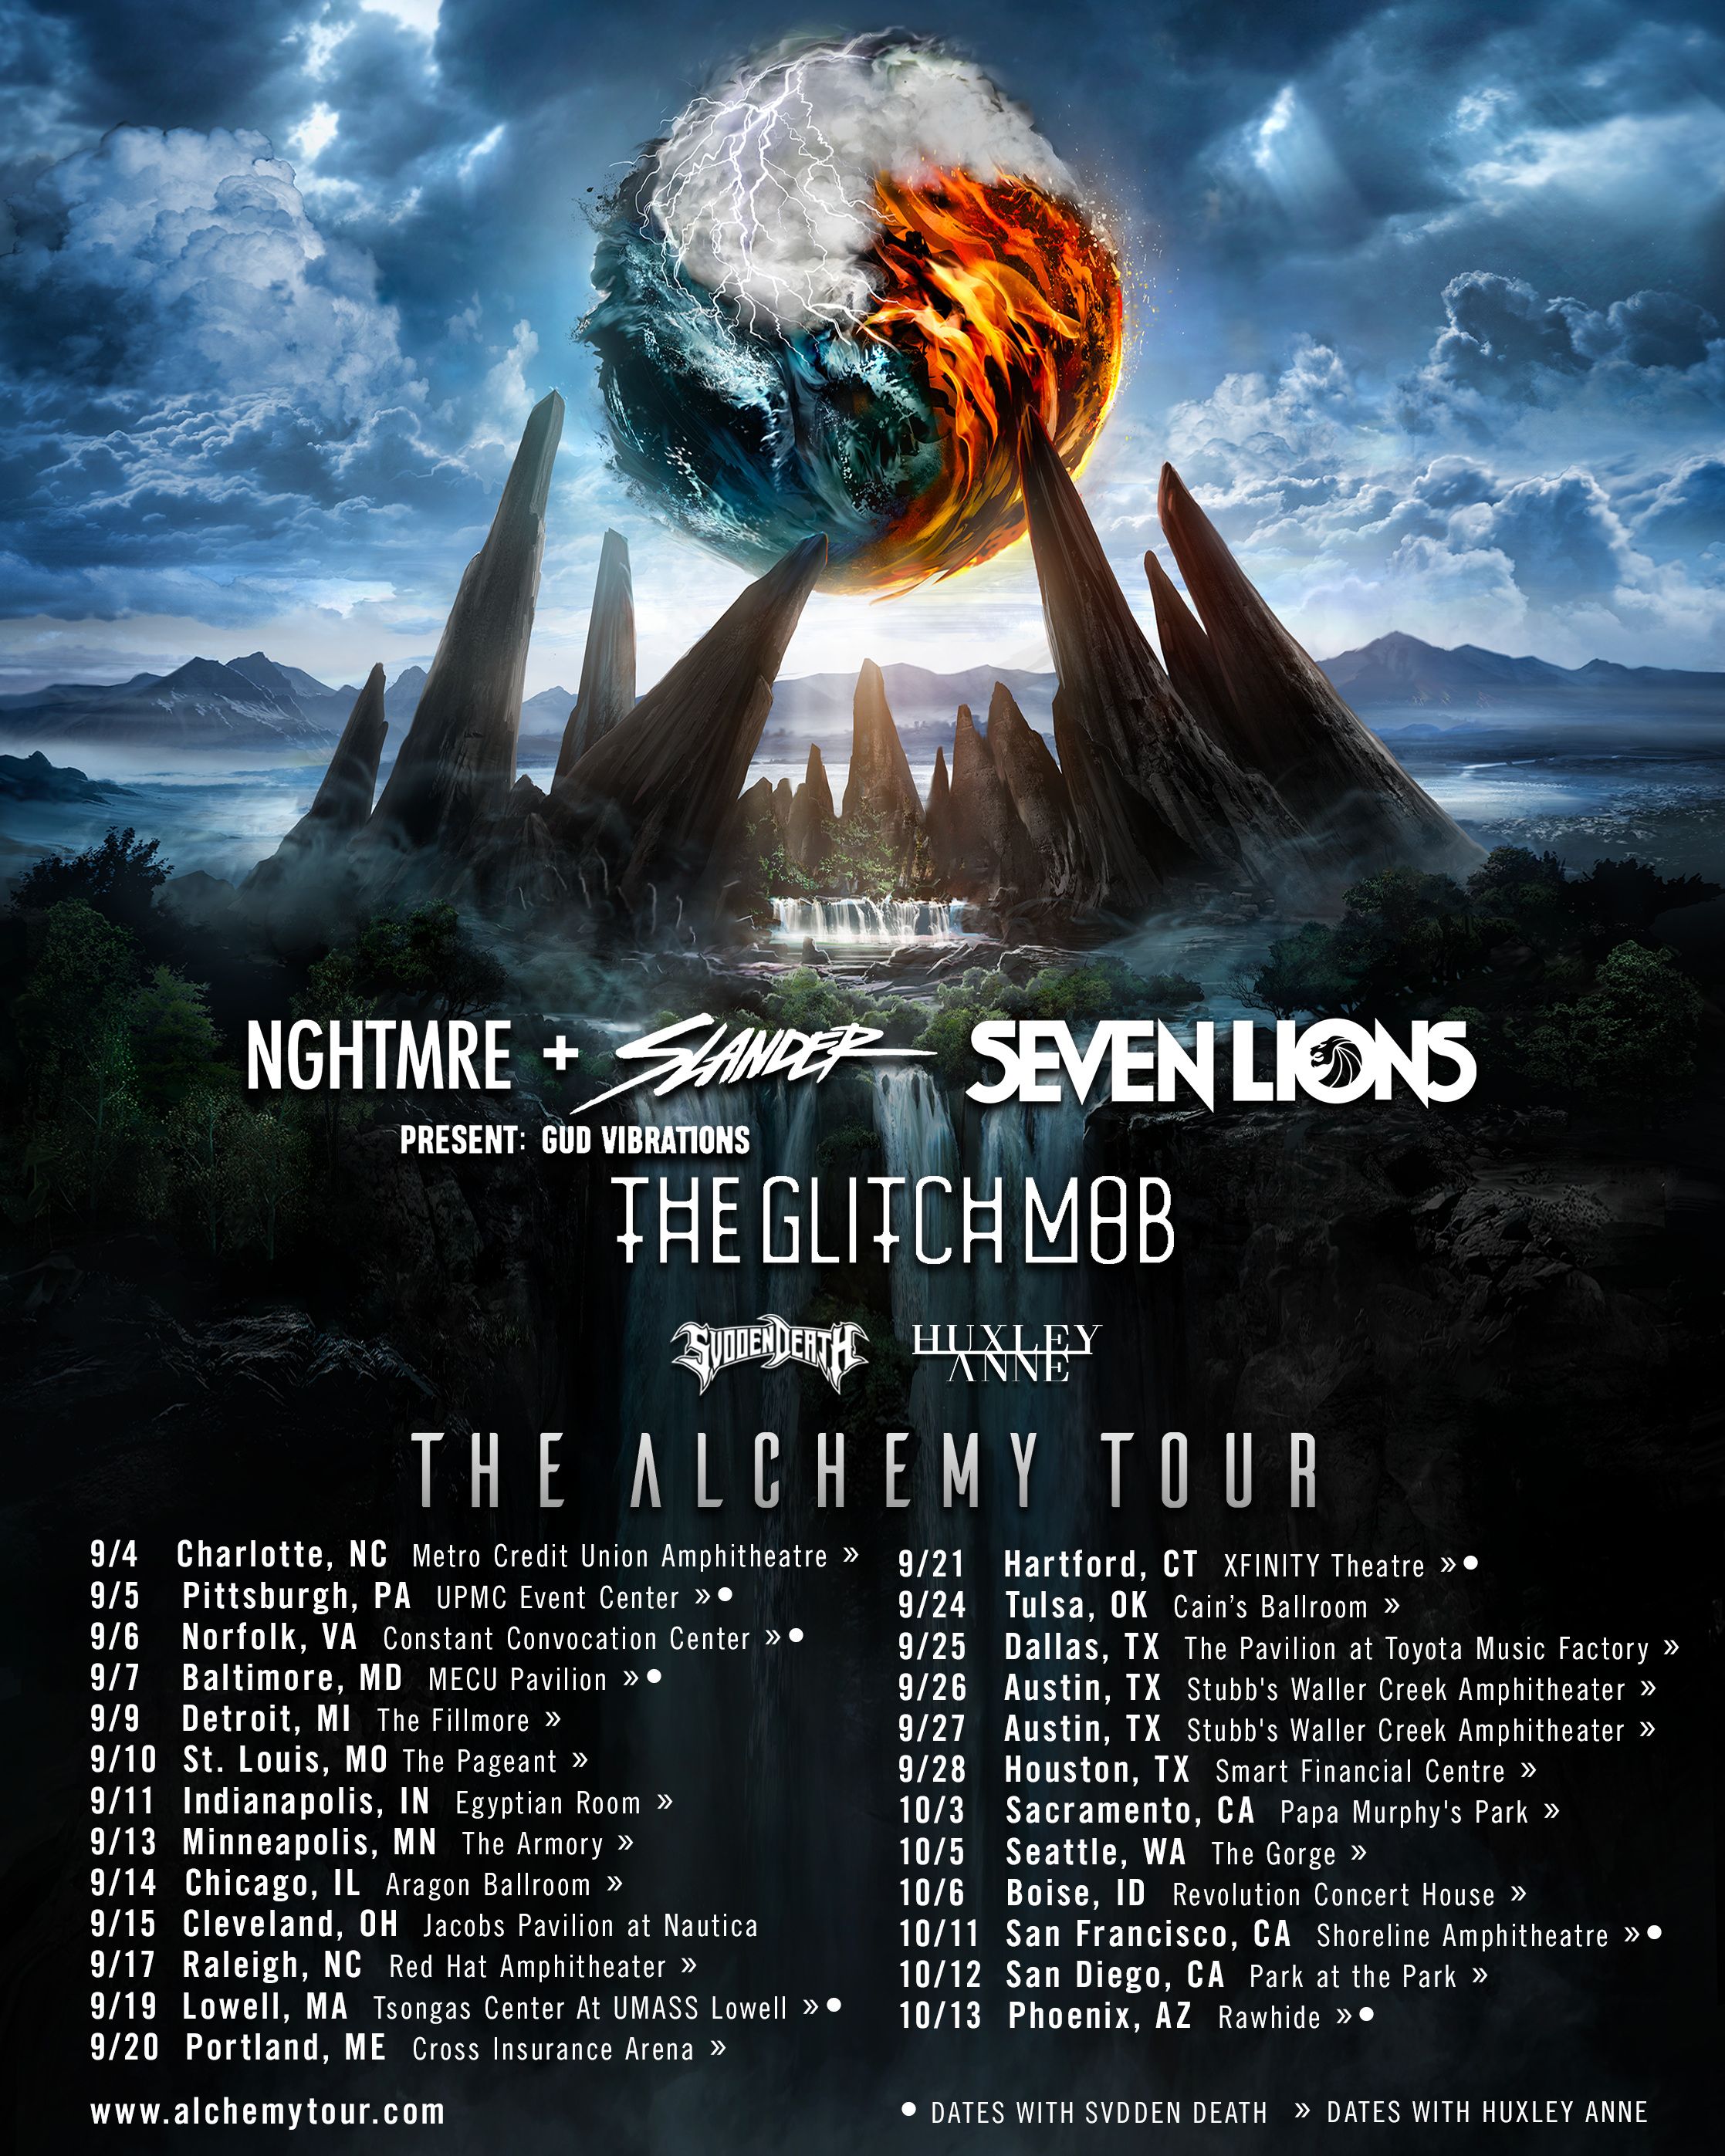 THE ALCHEMY TOUR - Supporting The Glitch Mob, Seven Lions, Gud Vibrations (NGHTMRE x SLANDER) & SVDDEN DEATH ~*~